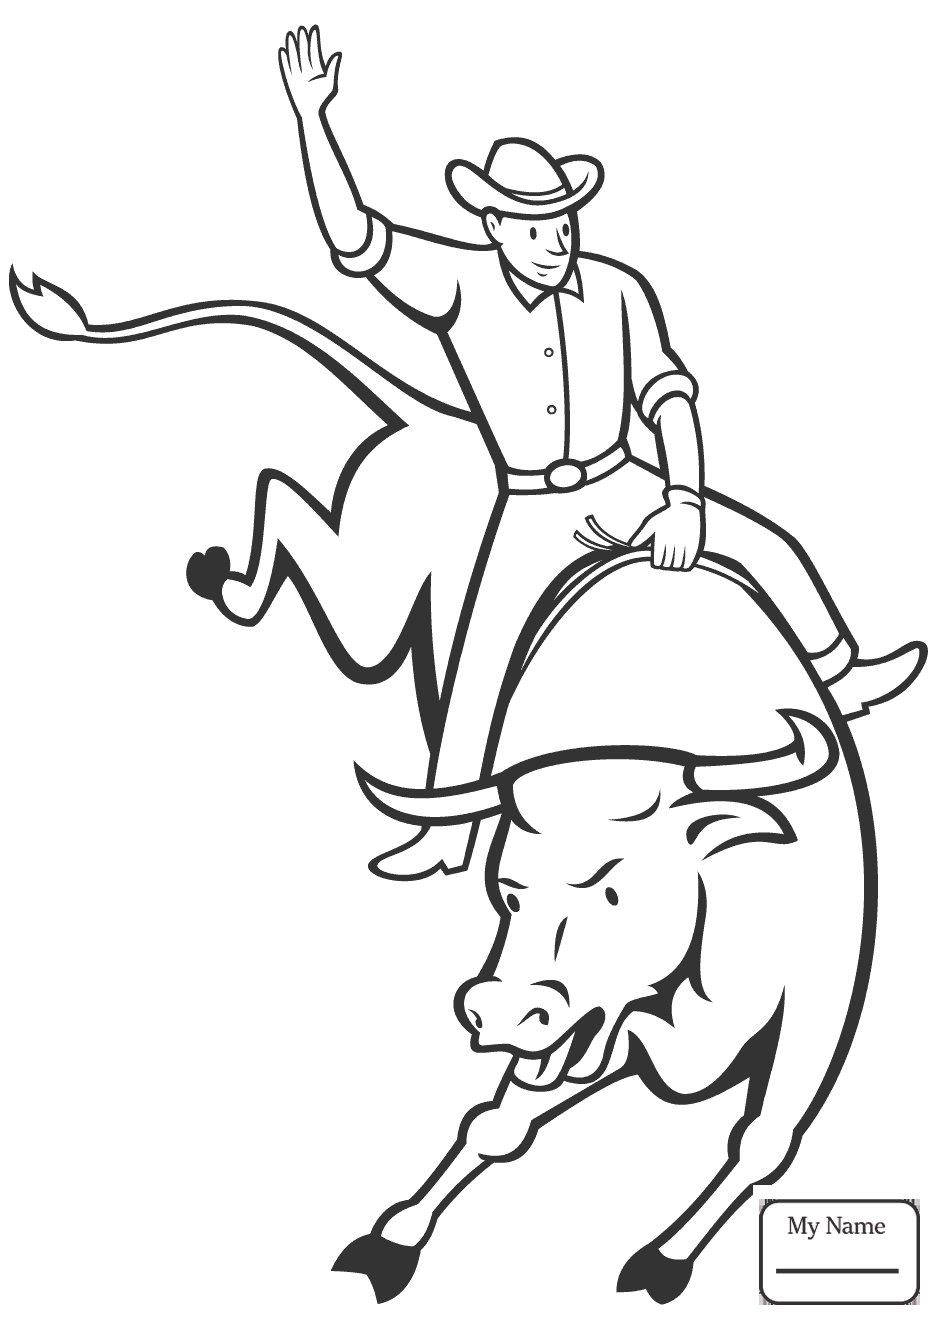 team roping coloring pages team roping coloring pages divyajananiorg team coloring pages roping